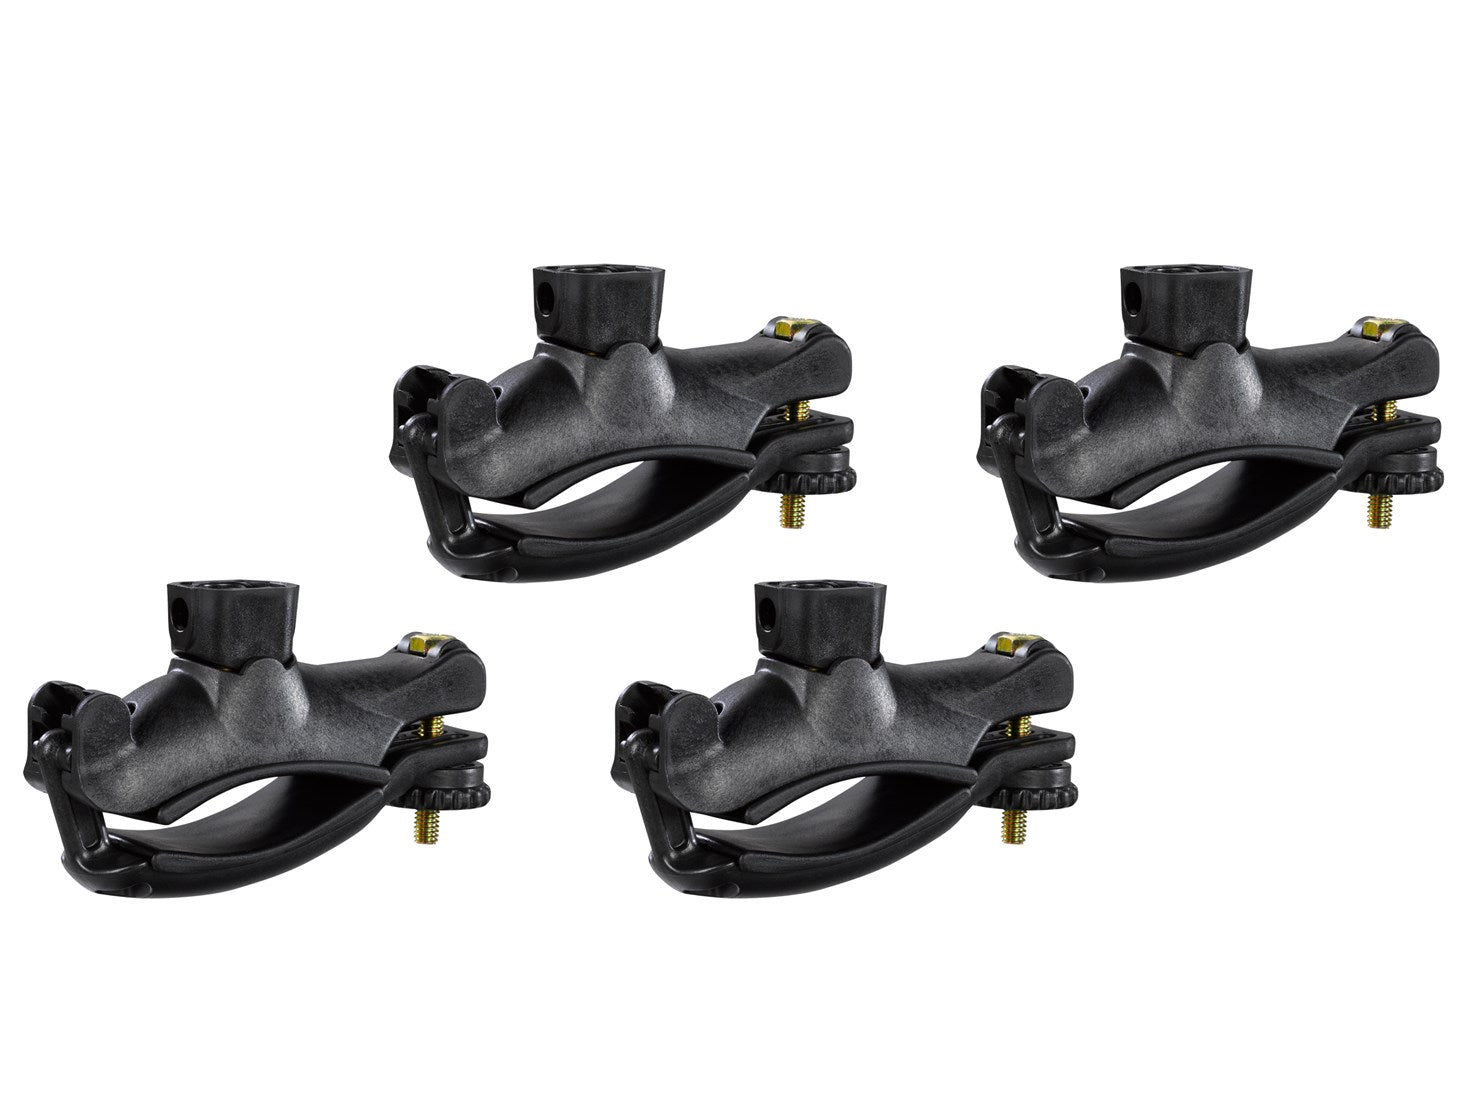 Yakima Universal Mighty Mounts 03590 Spare Parts Instructions For Rooftop Mount